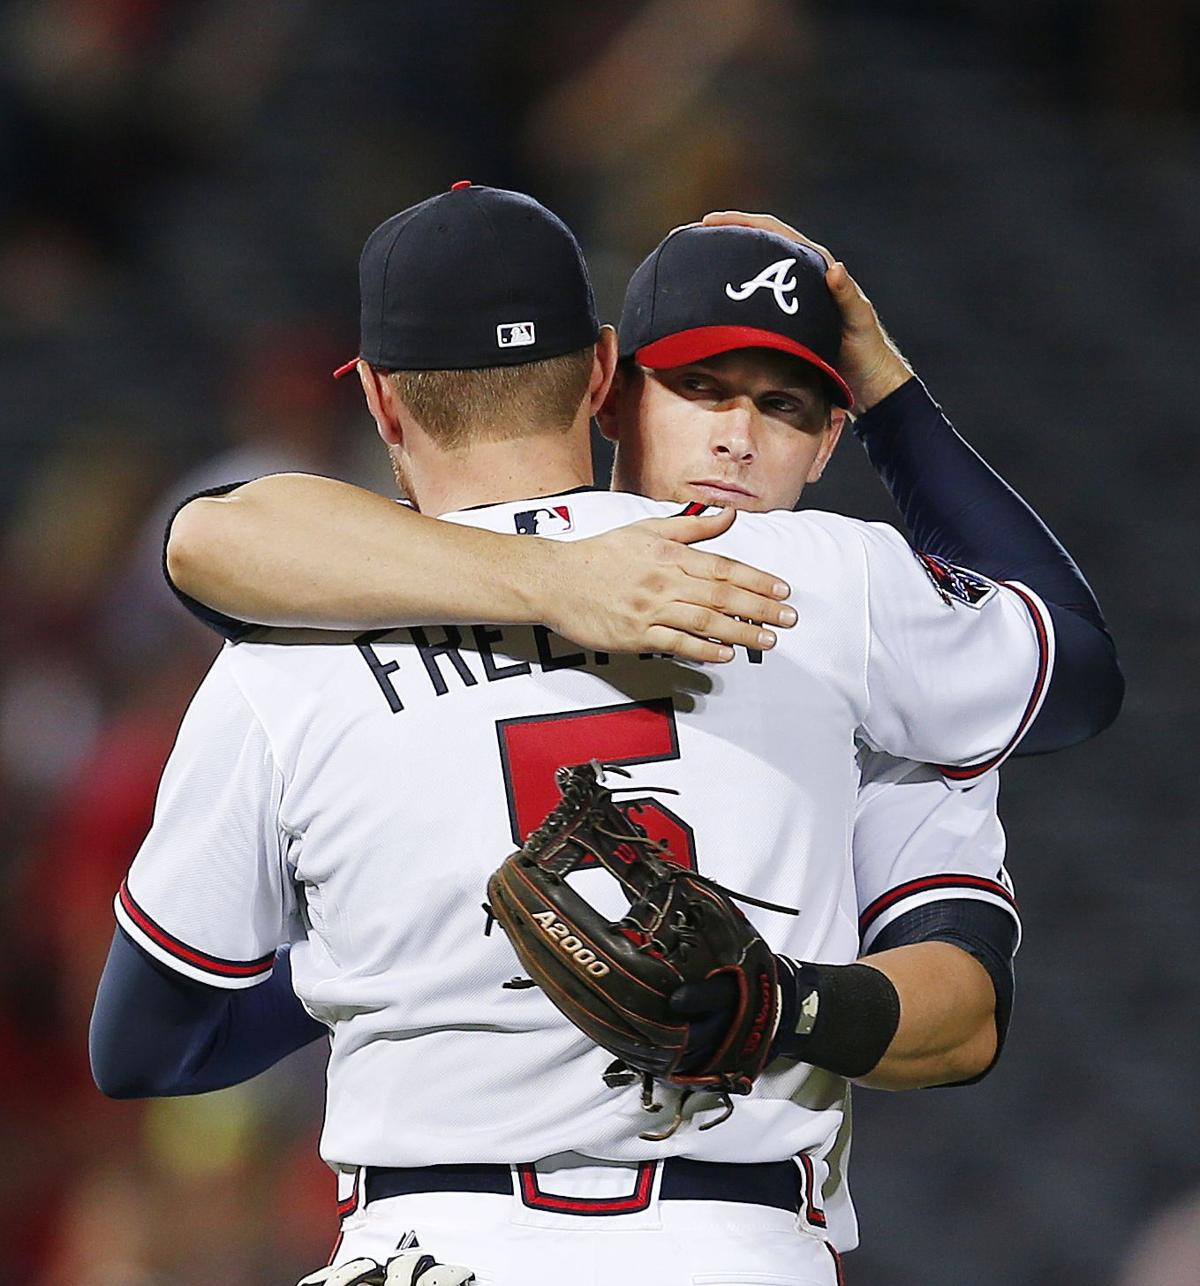 Floyd helps Braves put end to seven-game skid